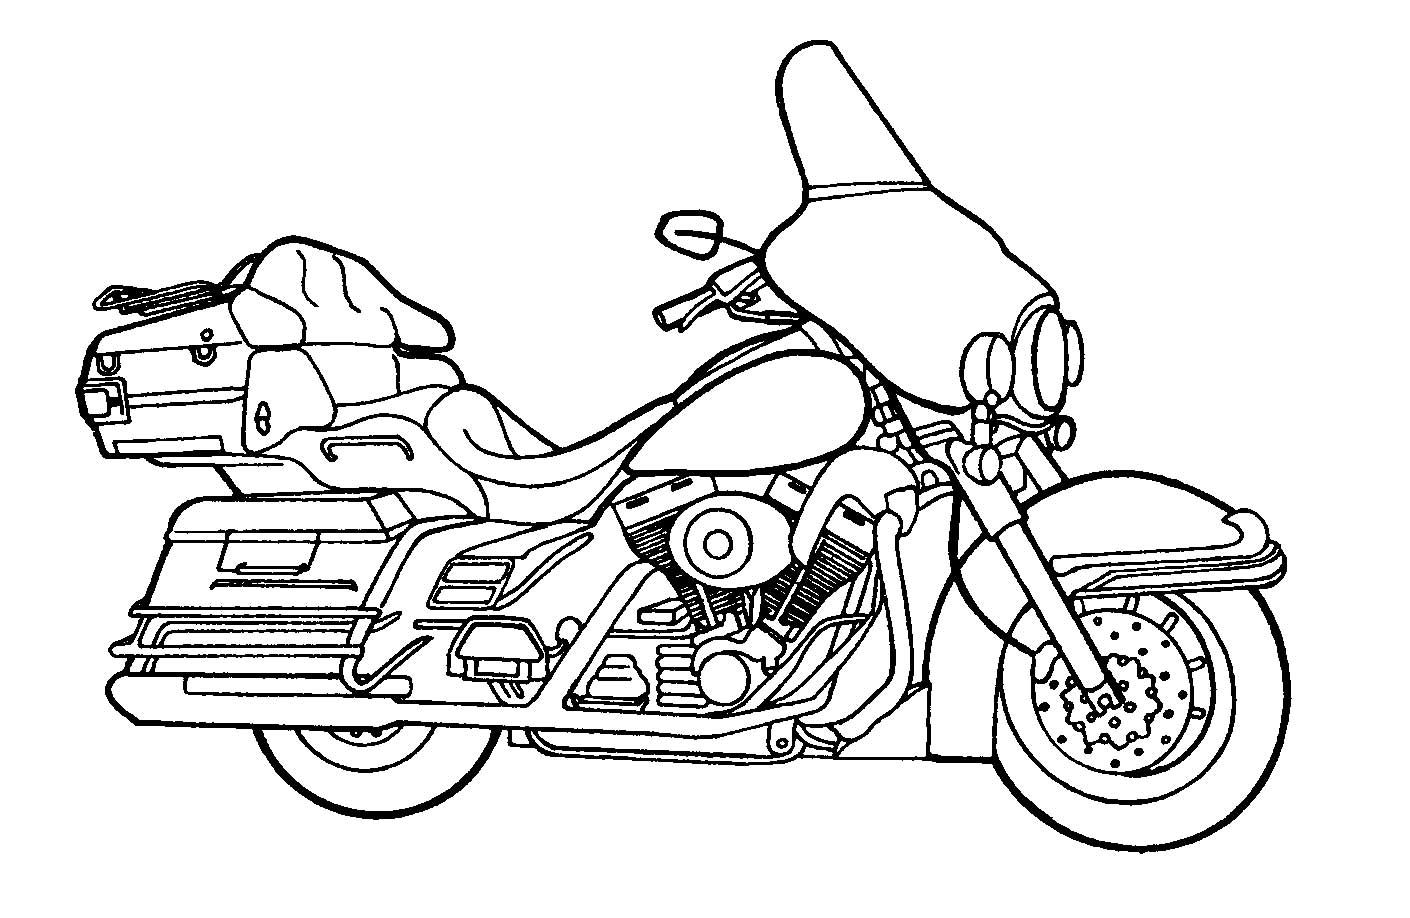 police motorcycle coloring pages motorcycle and scenery